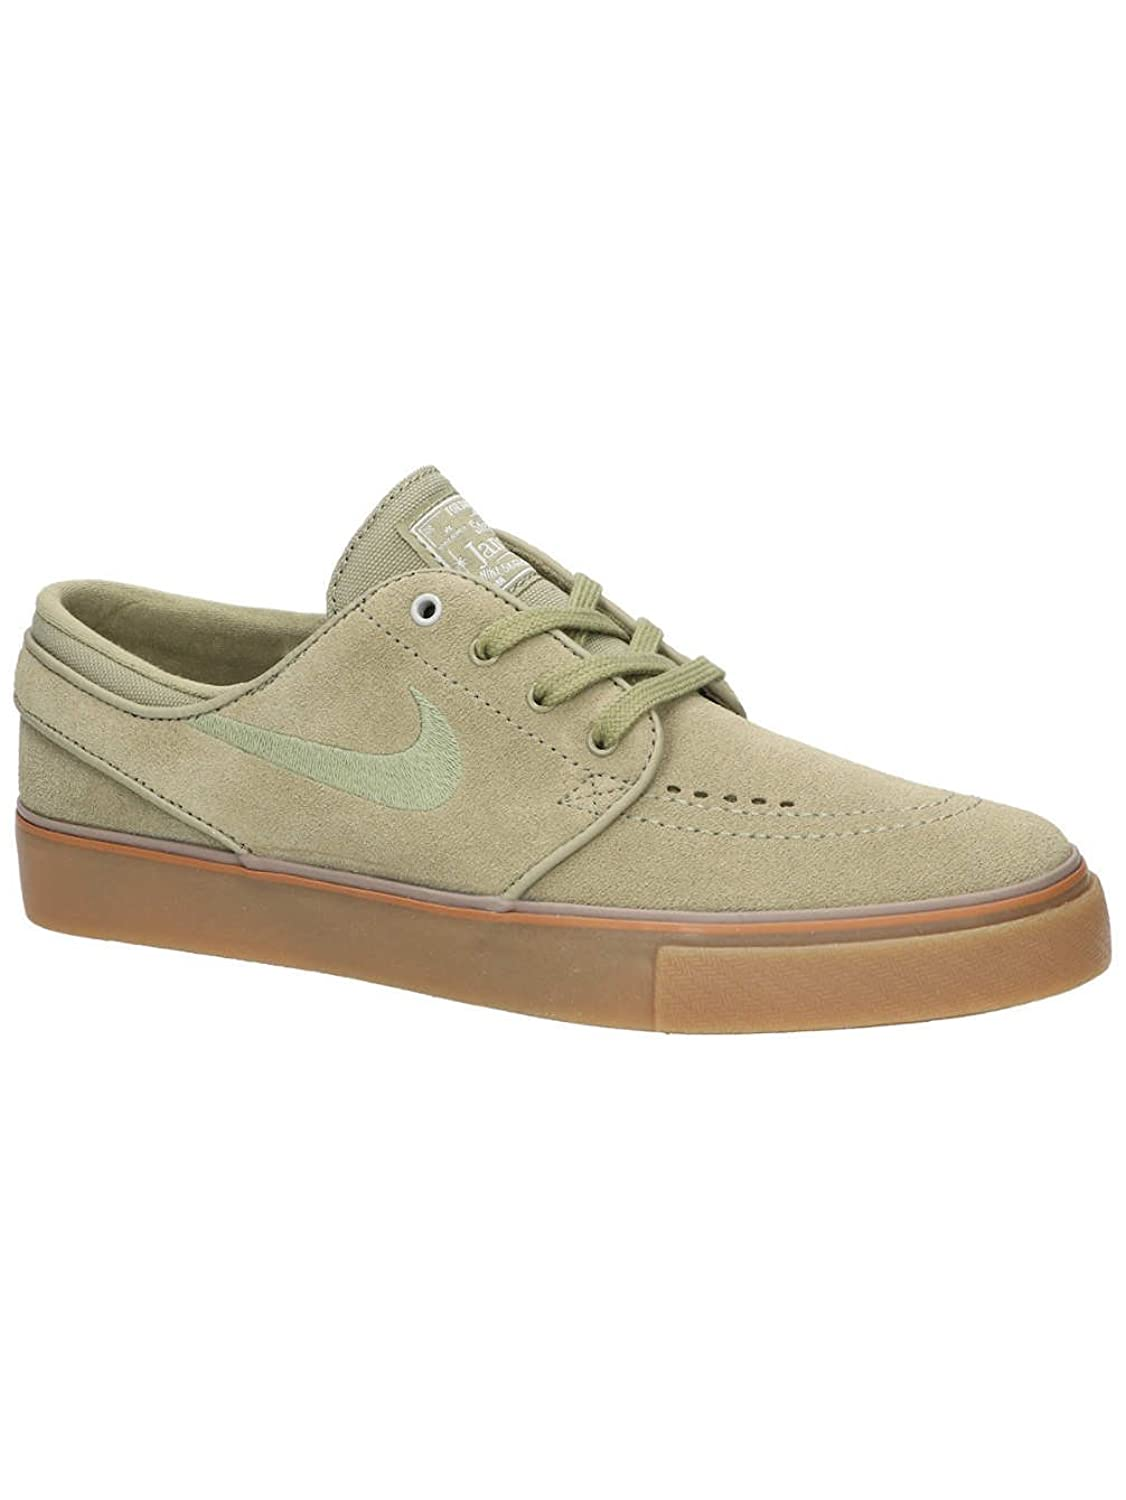 half off 08488 1abd8 Nike Women s WMNS Sb Zoom Janoski Fitness Shoes, 3 UK